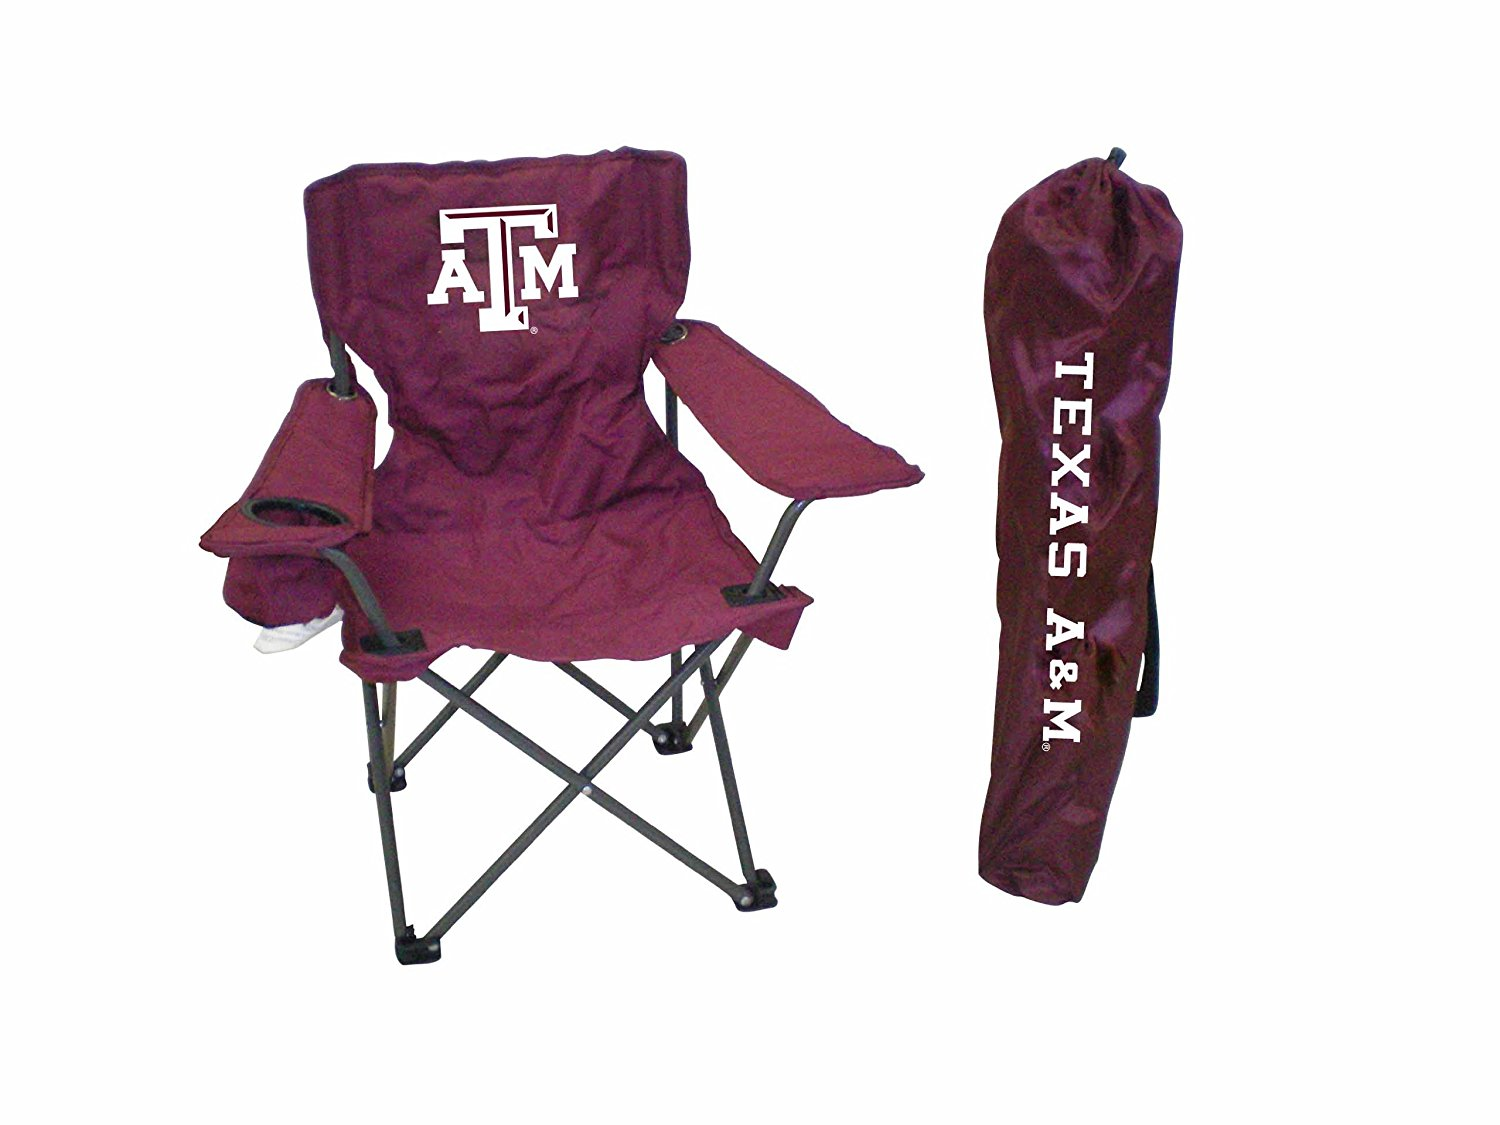 folding junior chair wedding chairs hire hertfordshire rivalry ncaa texas a andm aggies youth with